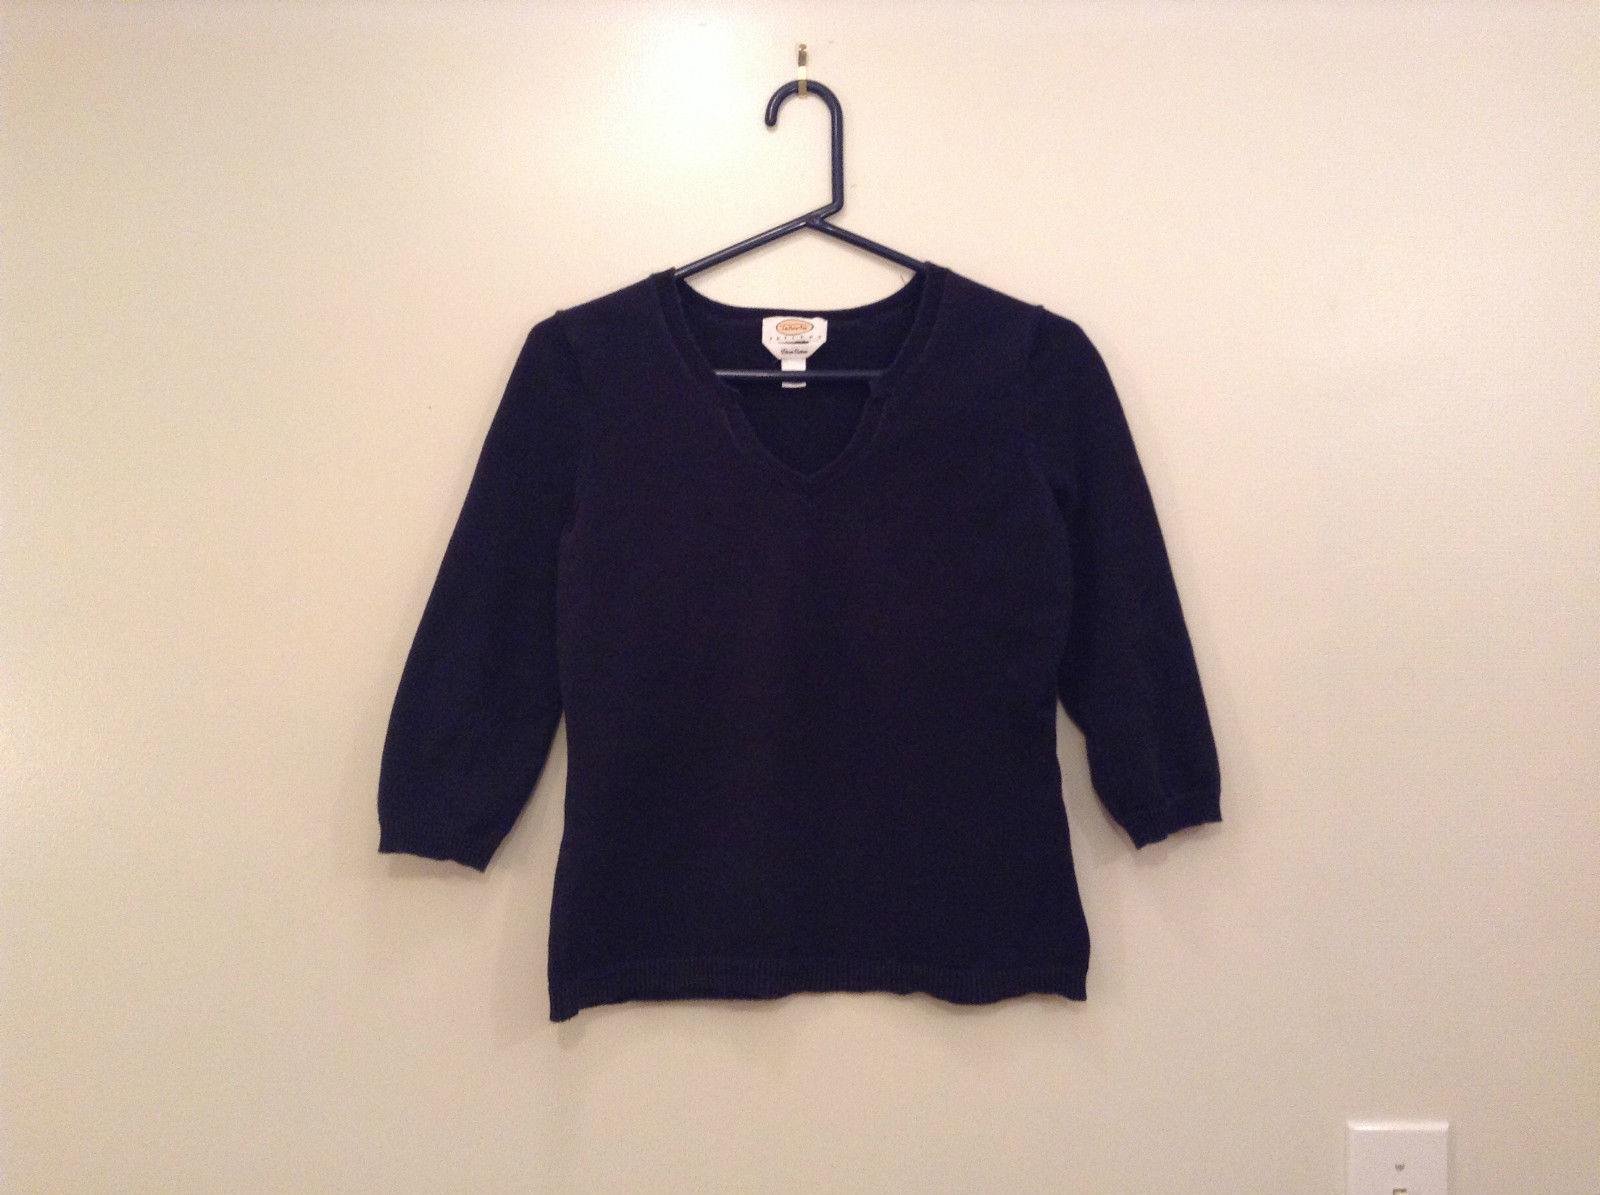 Talbots Petites Black V Neck Sweater Size Small Three Quarter Length Sleeves